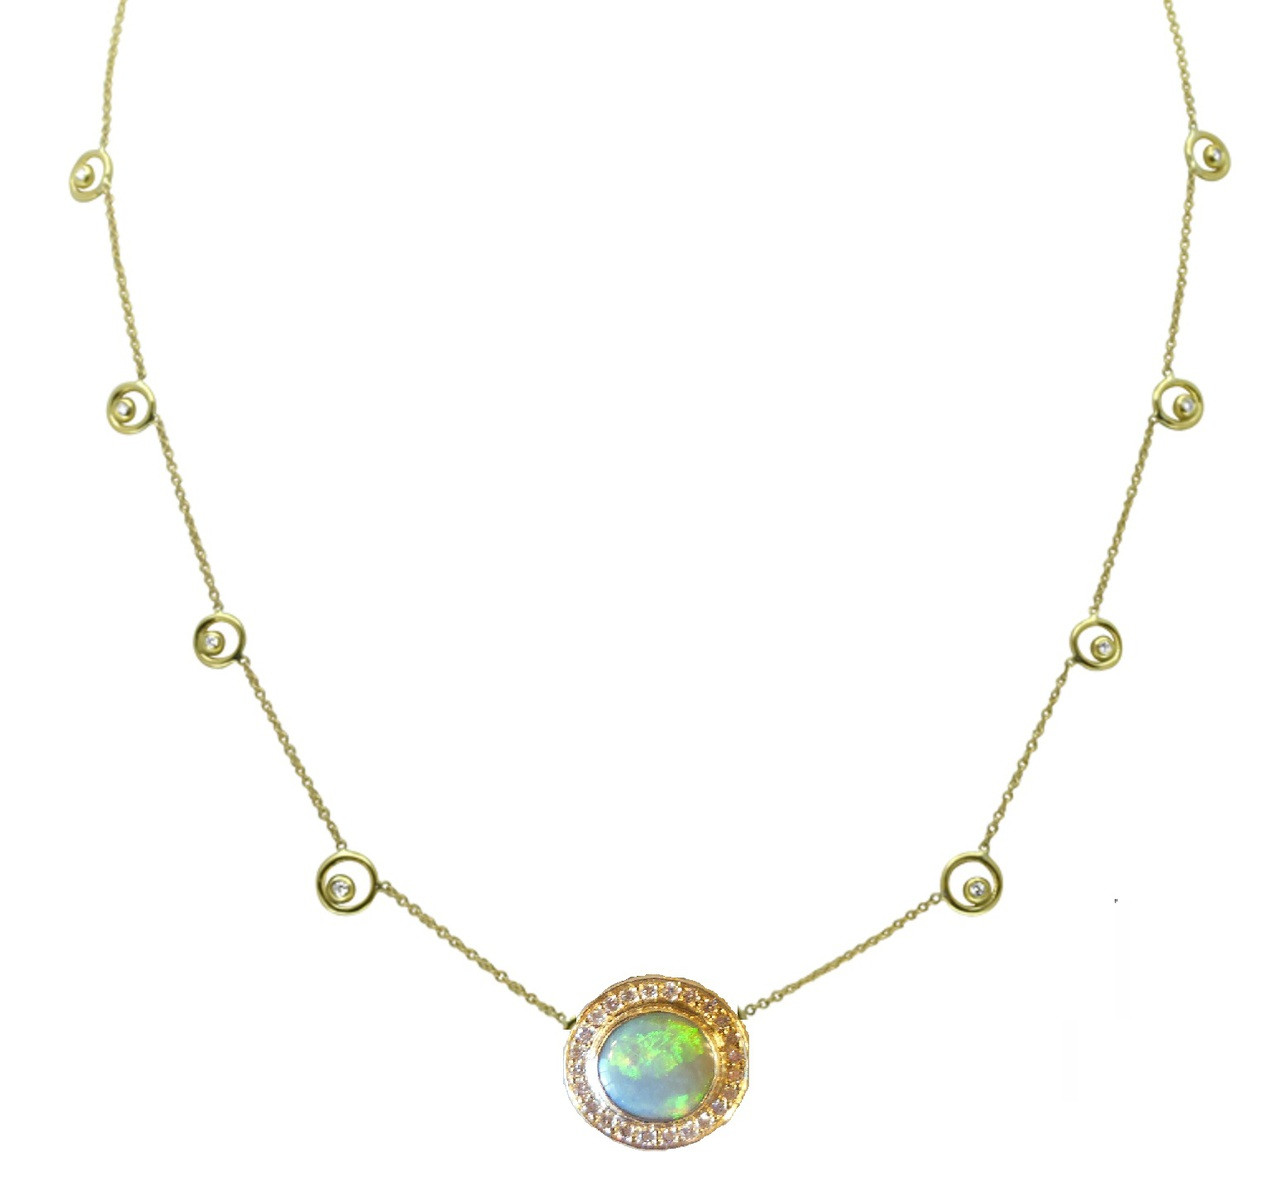 Australian Opal with diamonds on Karma Chain